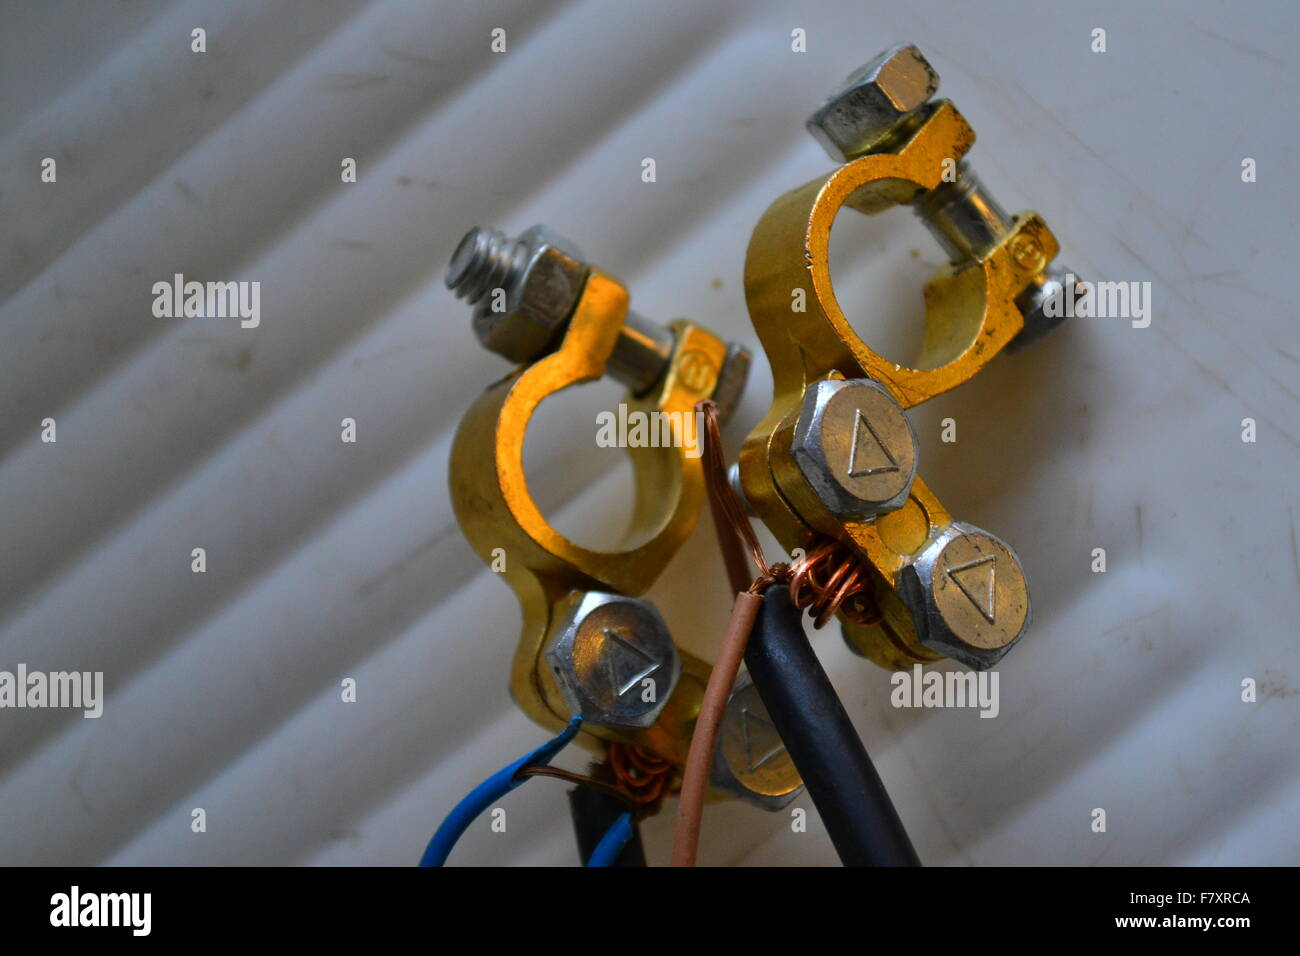 Car-Battery contacts - Stock Image